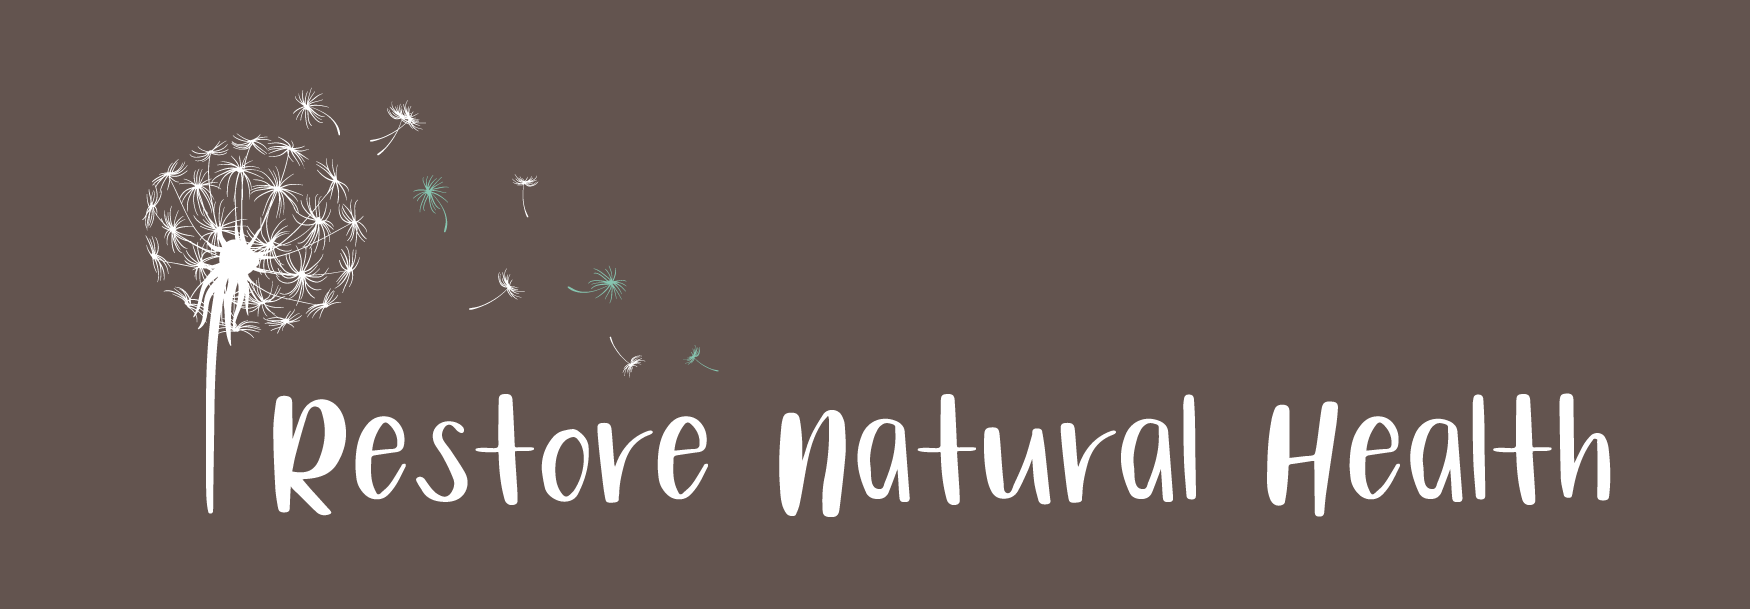 Restore Natural Health | Janelle Burns | Naturopath